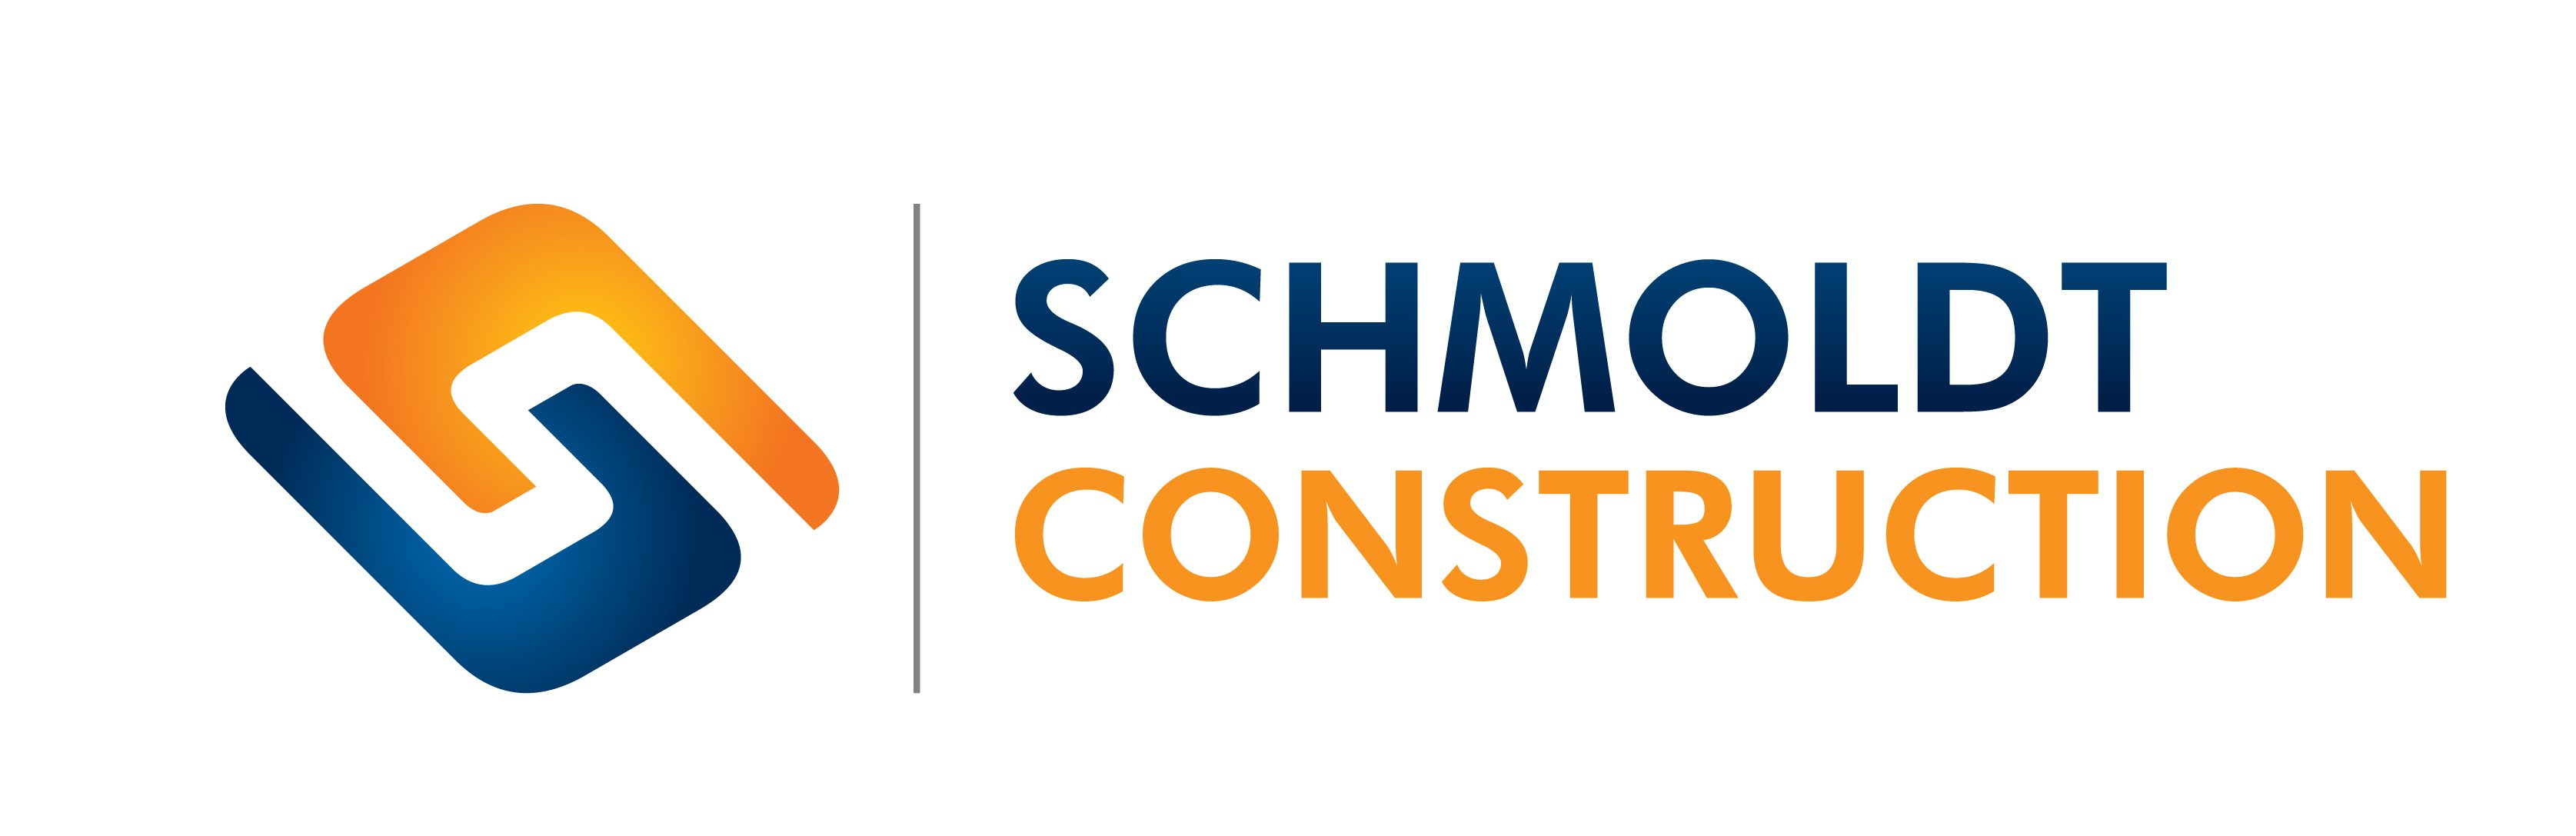 Schmoldt Construction